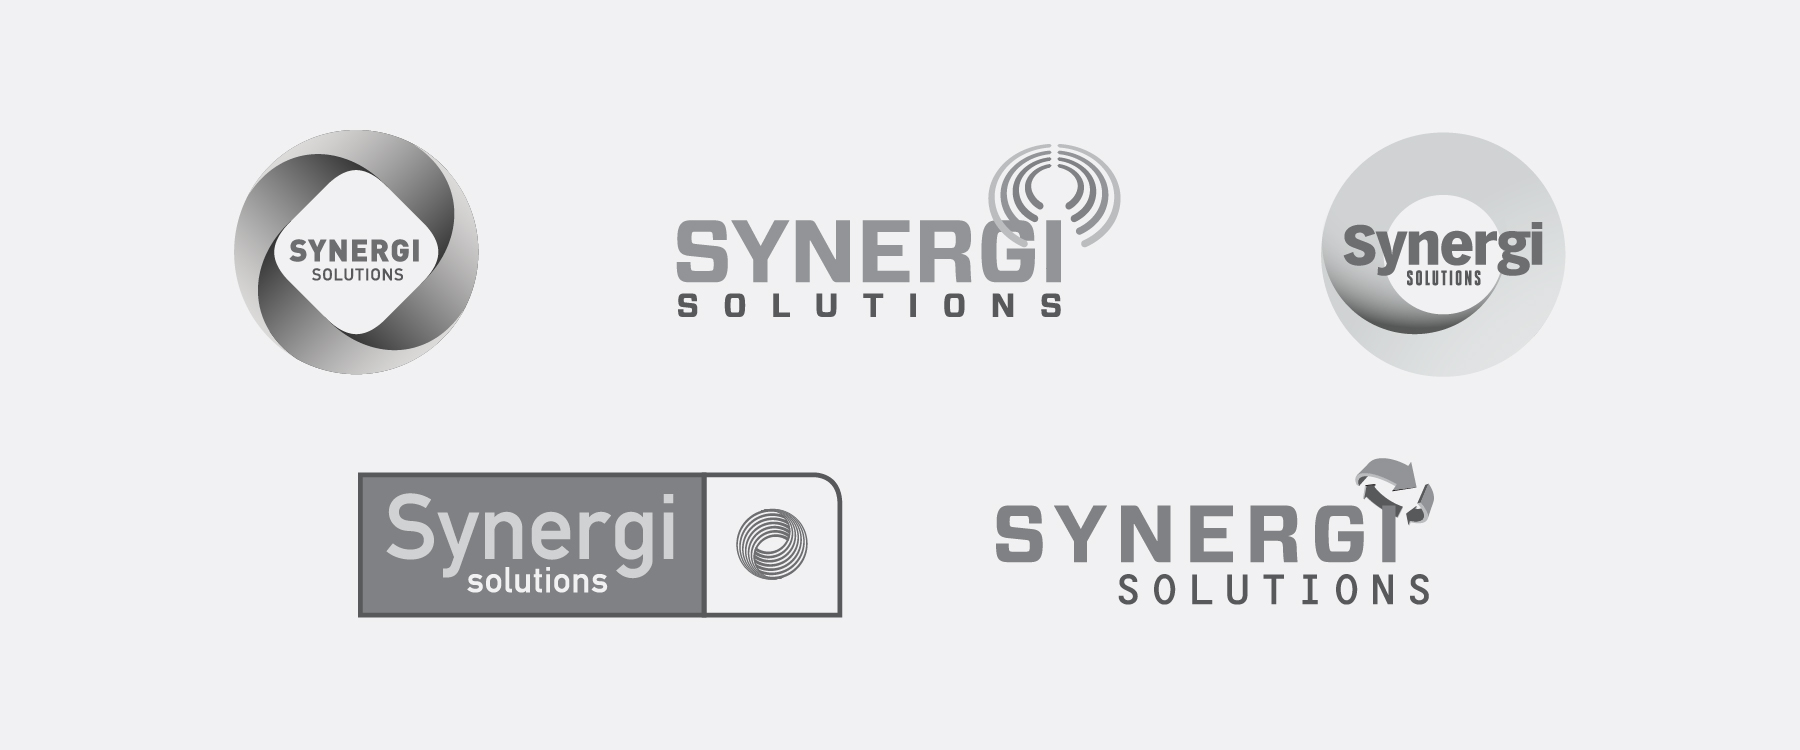 SYNERGI SOLUTIONS SOFTWARE COMPANY LOGO AND LOGO STUDY